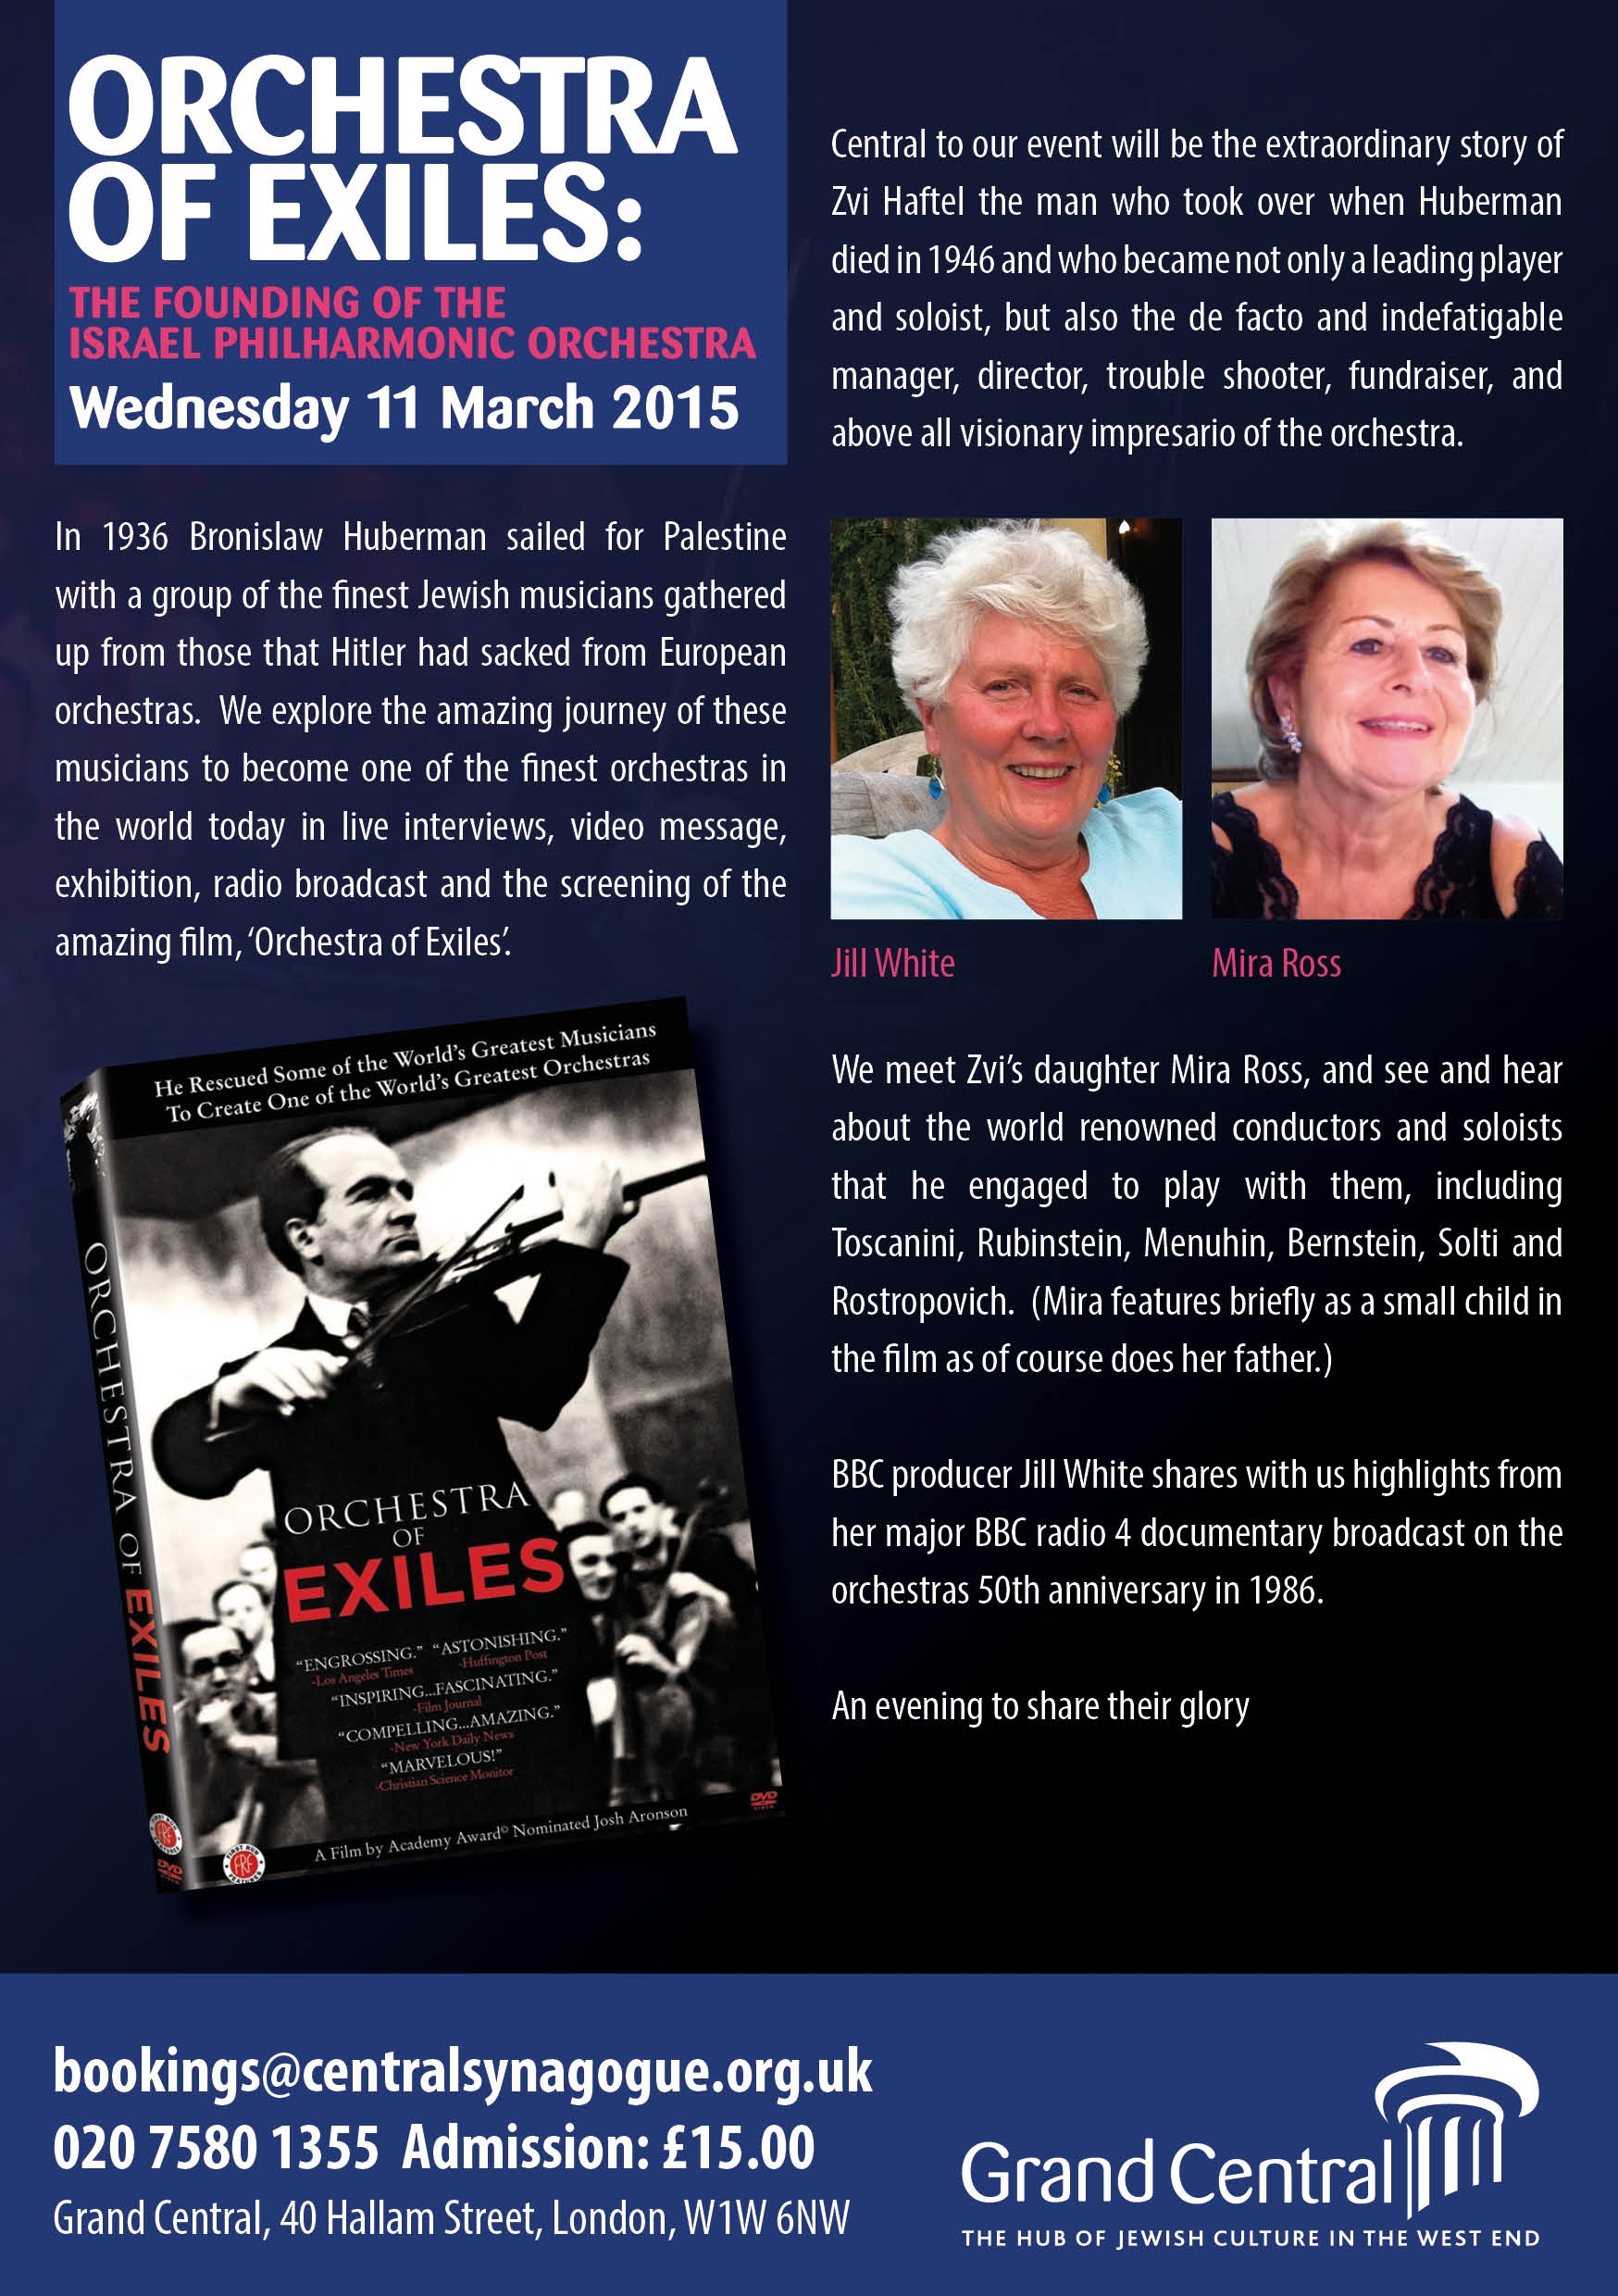 ORCHESTRA OF EXILES2 March 2015